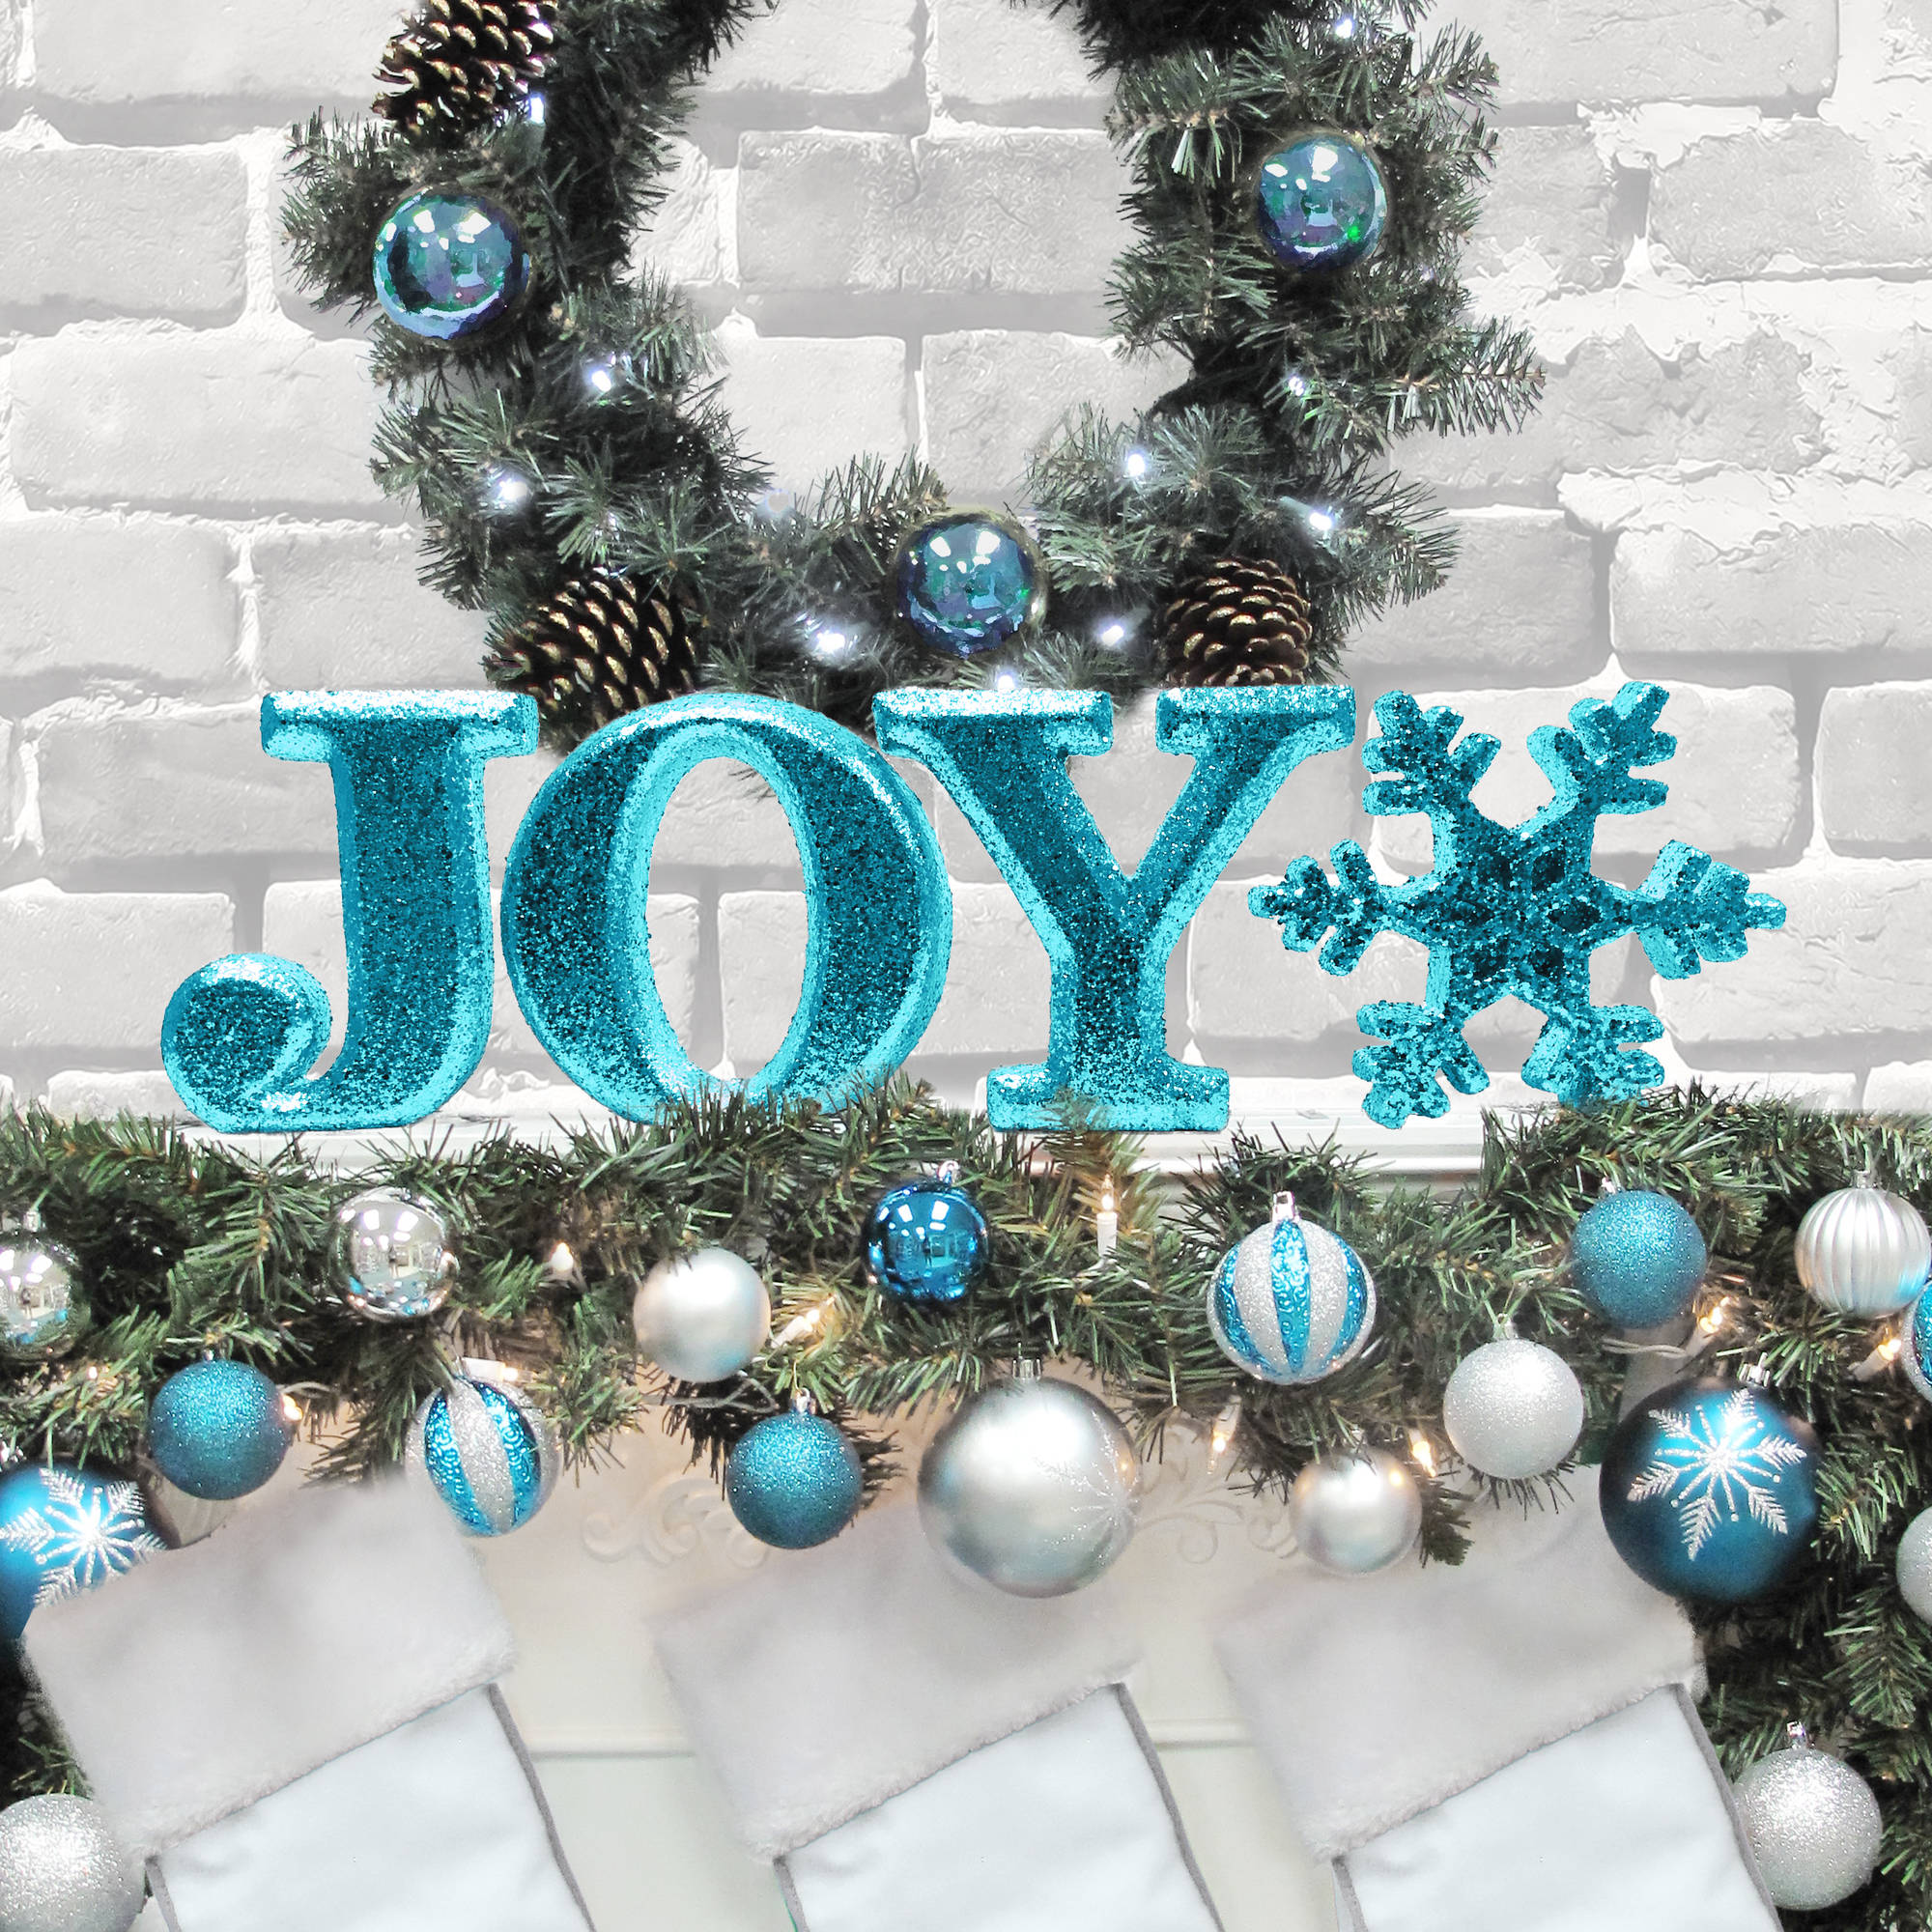 holiday time christmas decor 8 decorative joy letter set glitter teal walmartcom